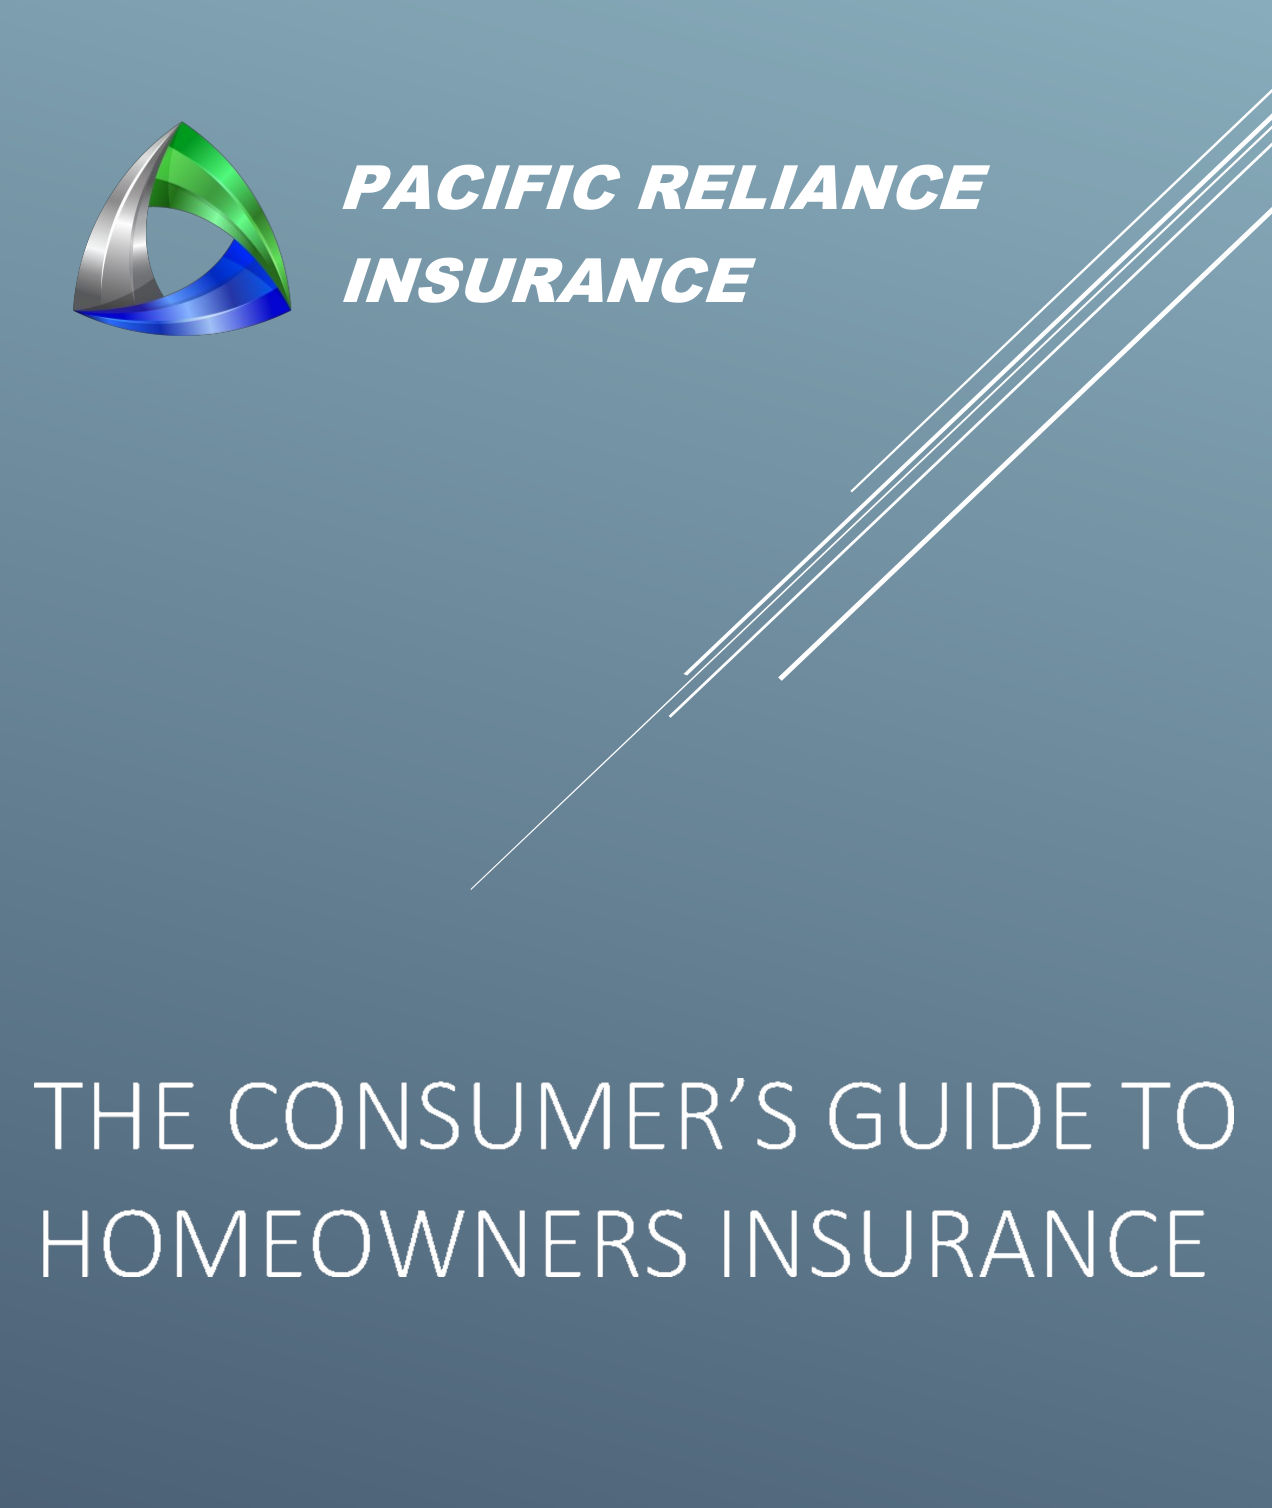 The Consumer's Guide to Homeowners Insurance Download PDF